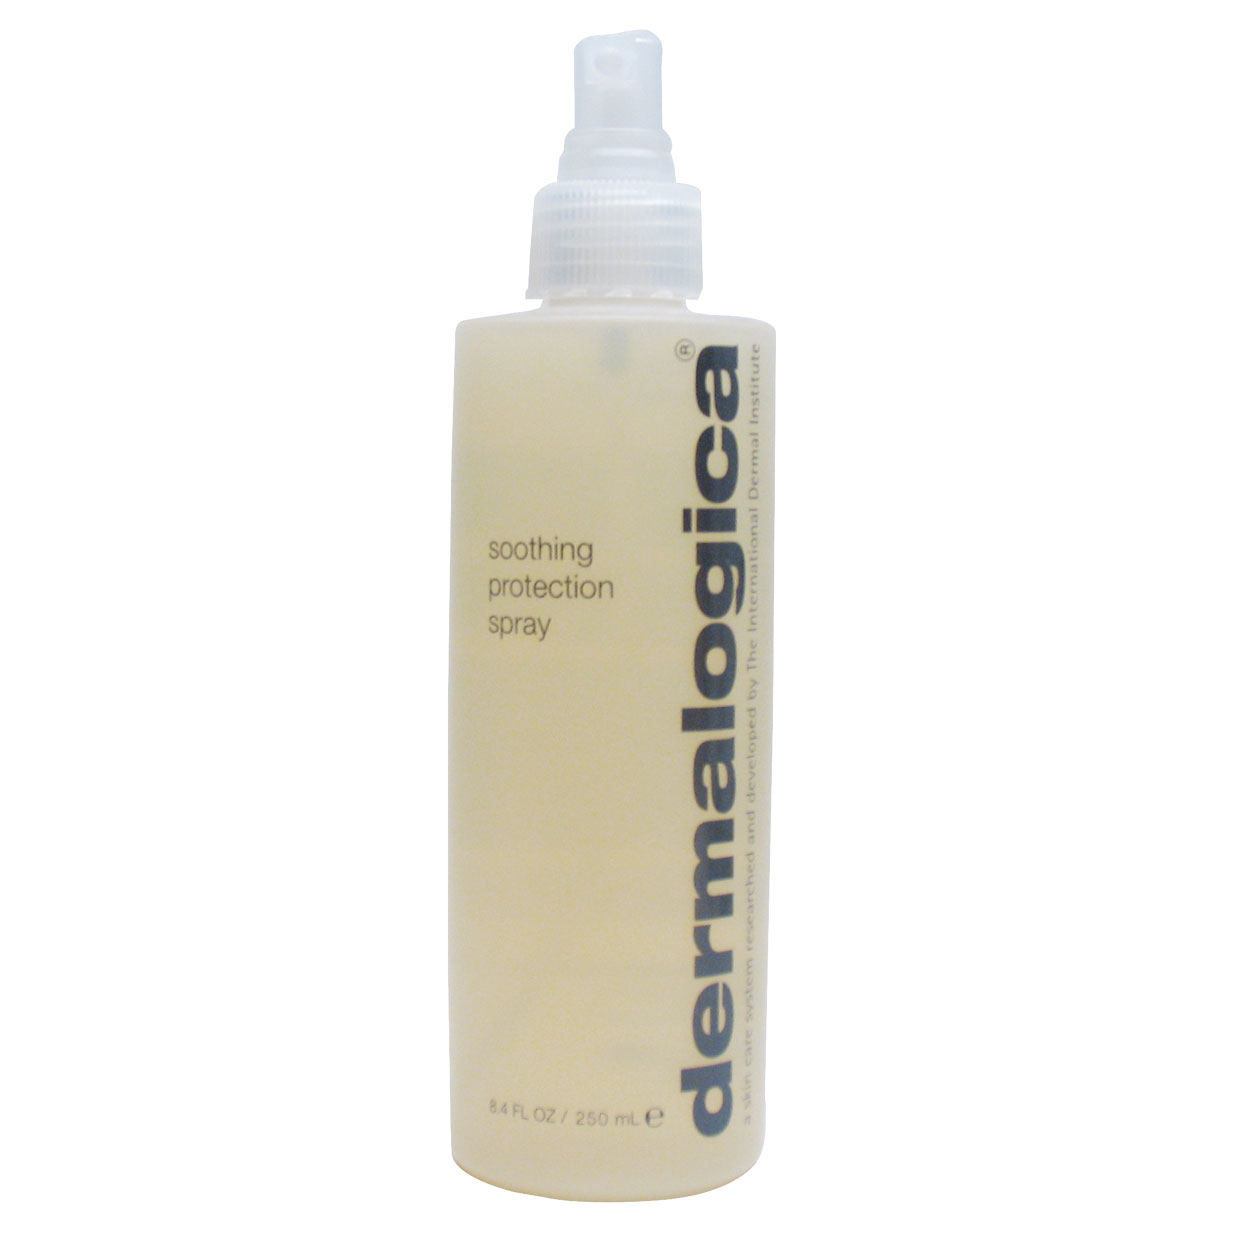 Nước Hoa Hồng Soothing Protection Spray Dermalogica